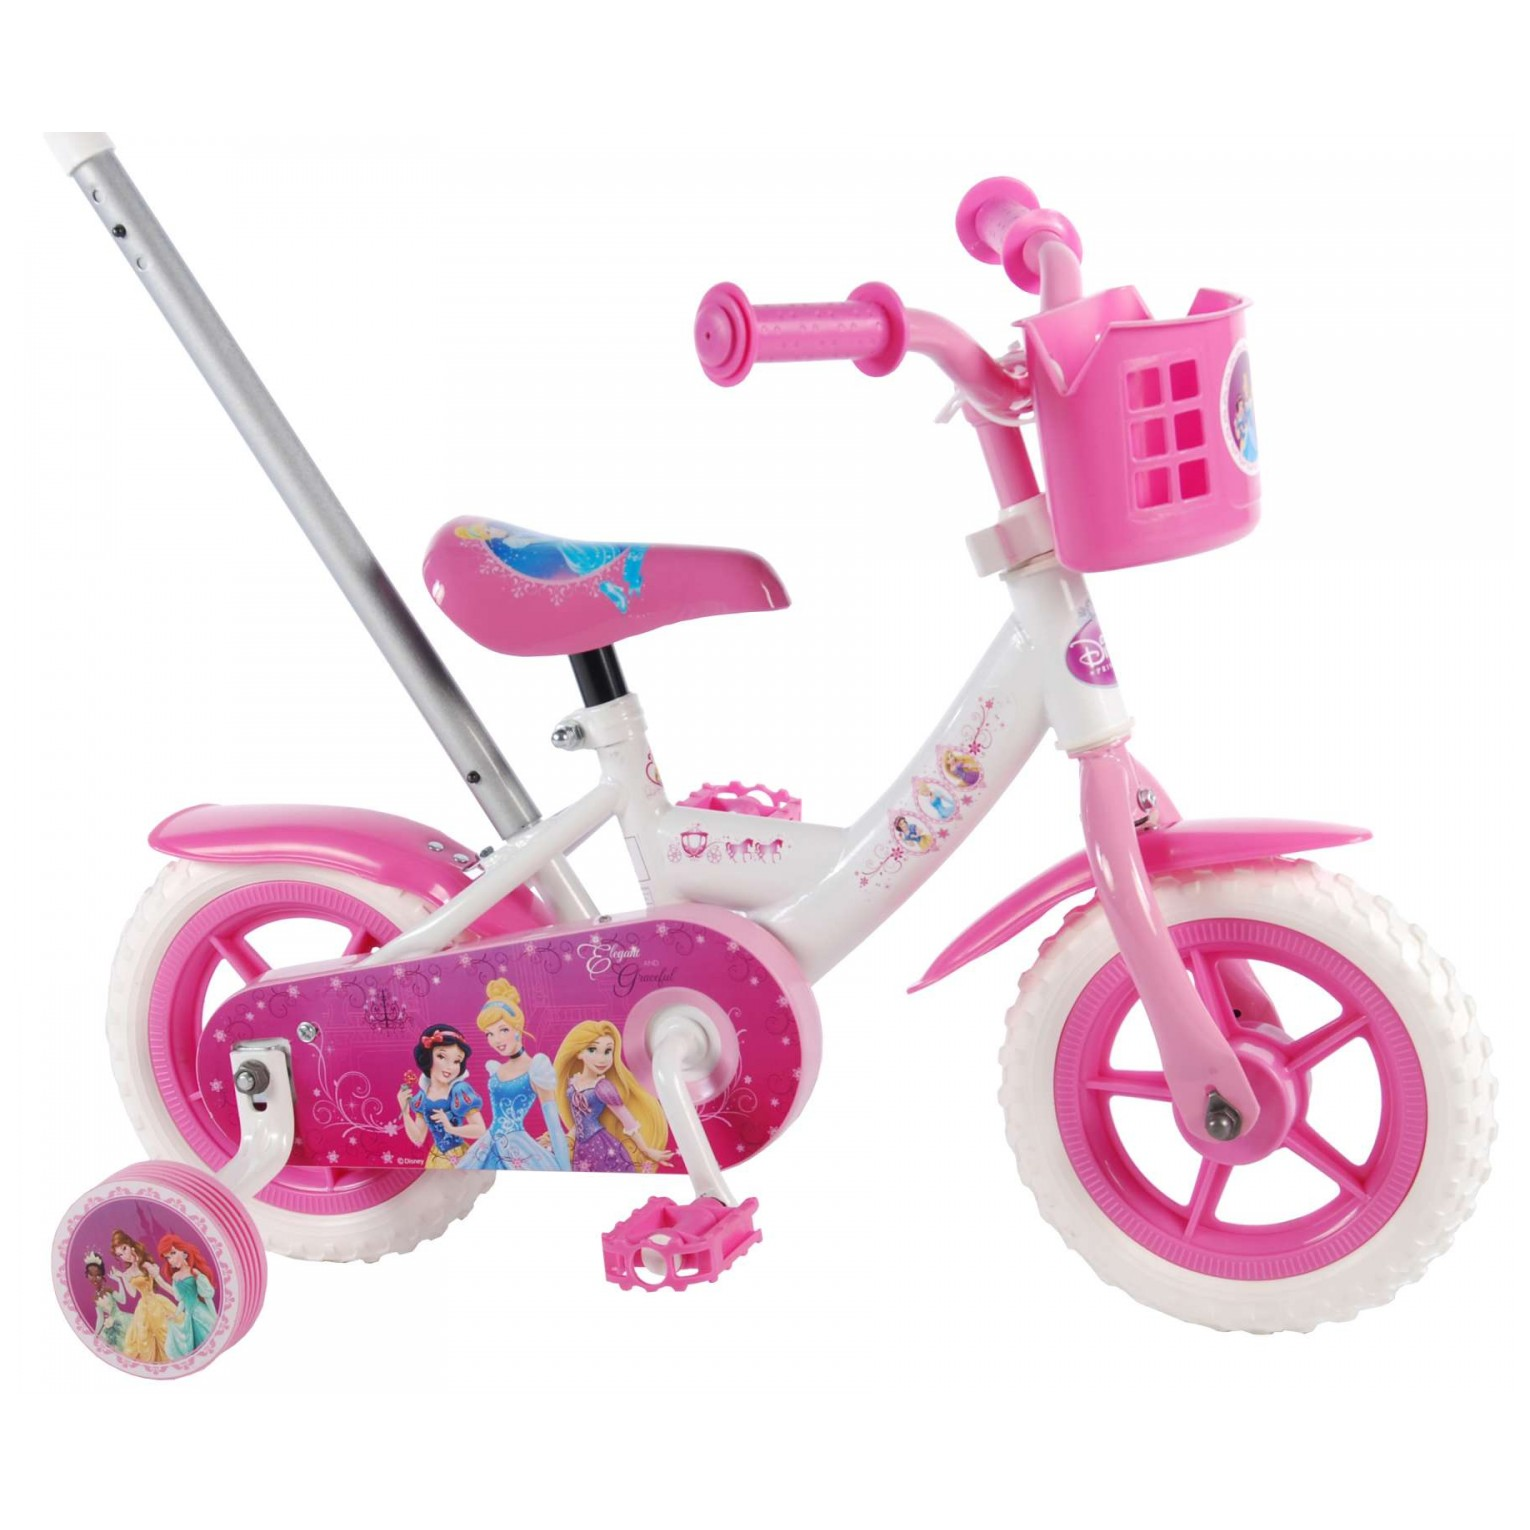 Disney Princess Fiets - 10 inch - Roze/Wit